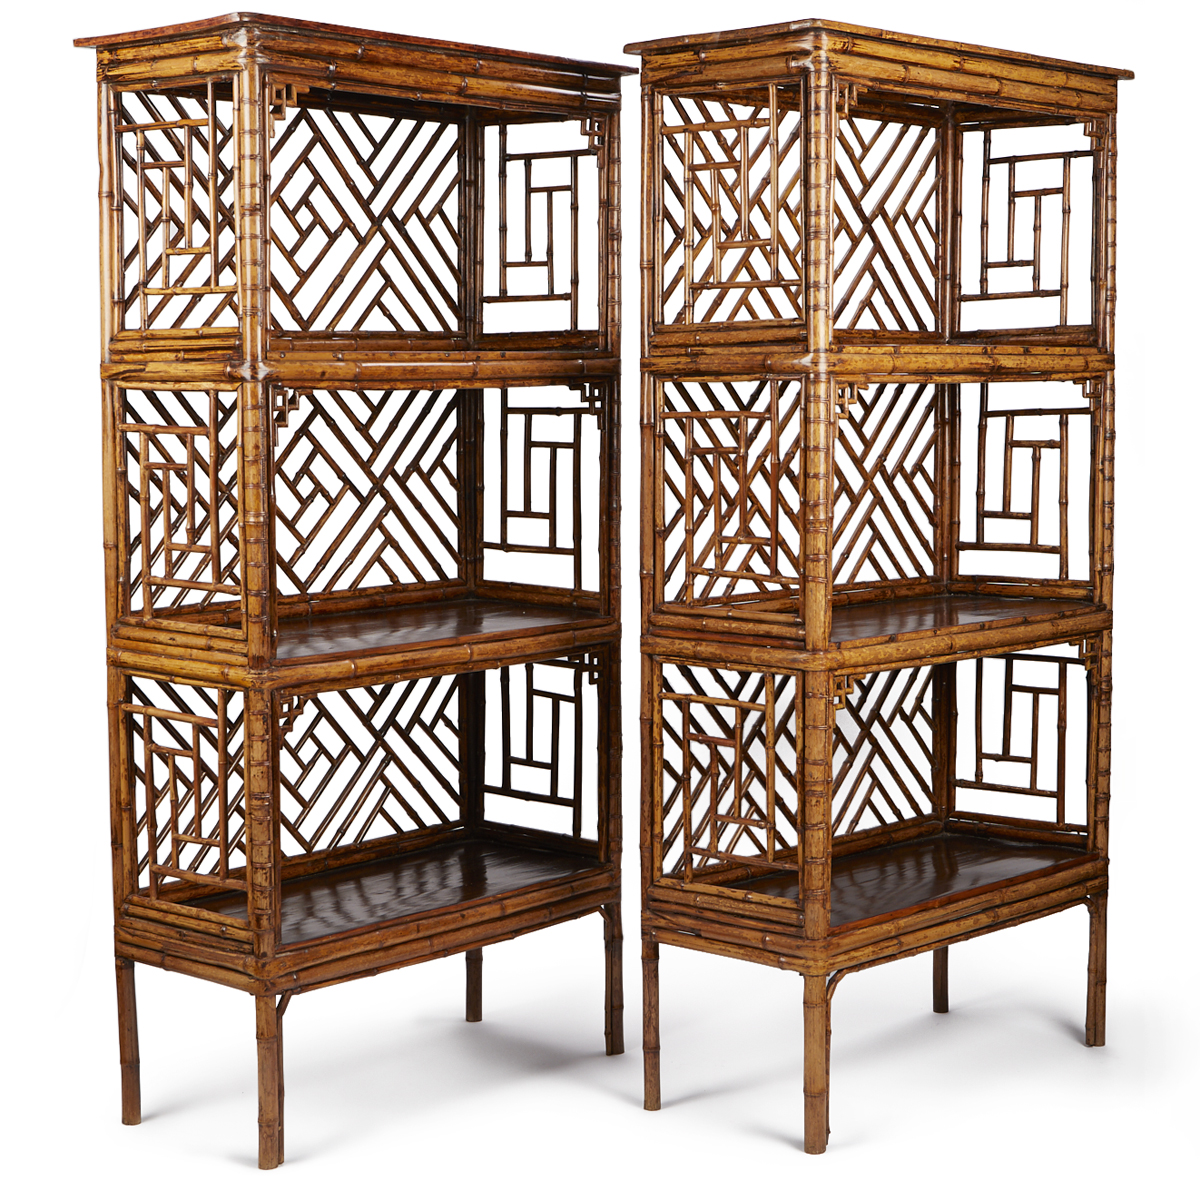 Chinese spotted bamboo shelves